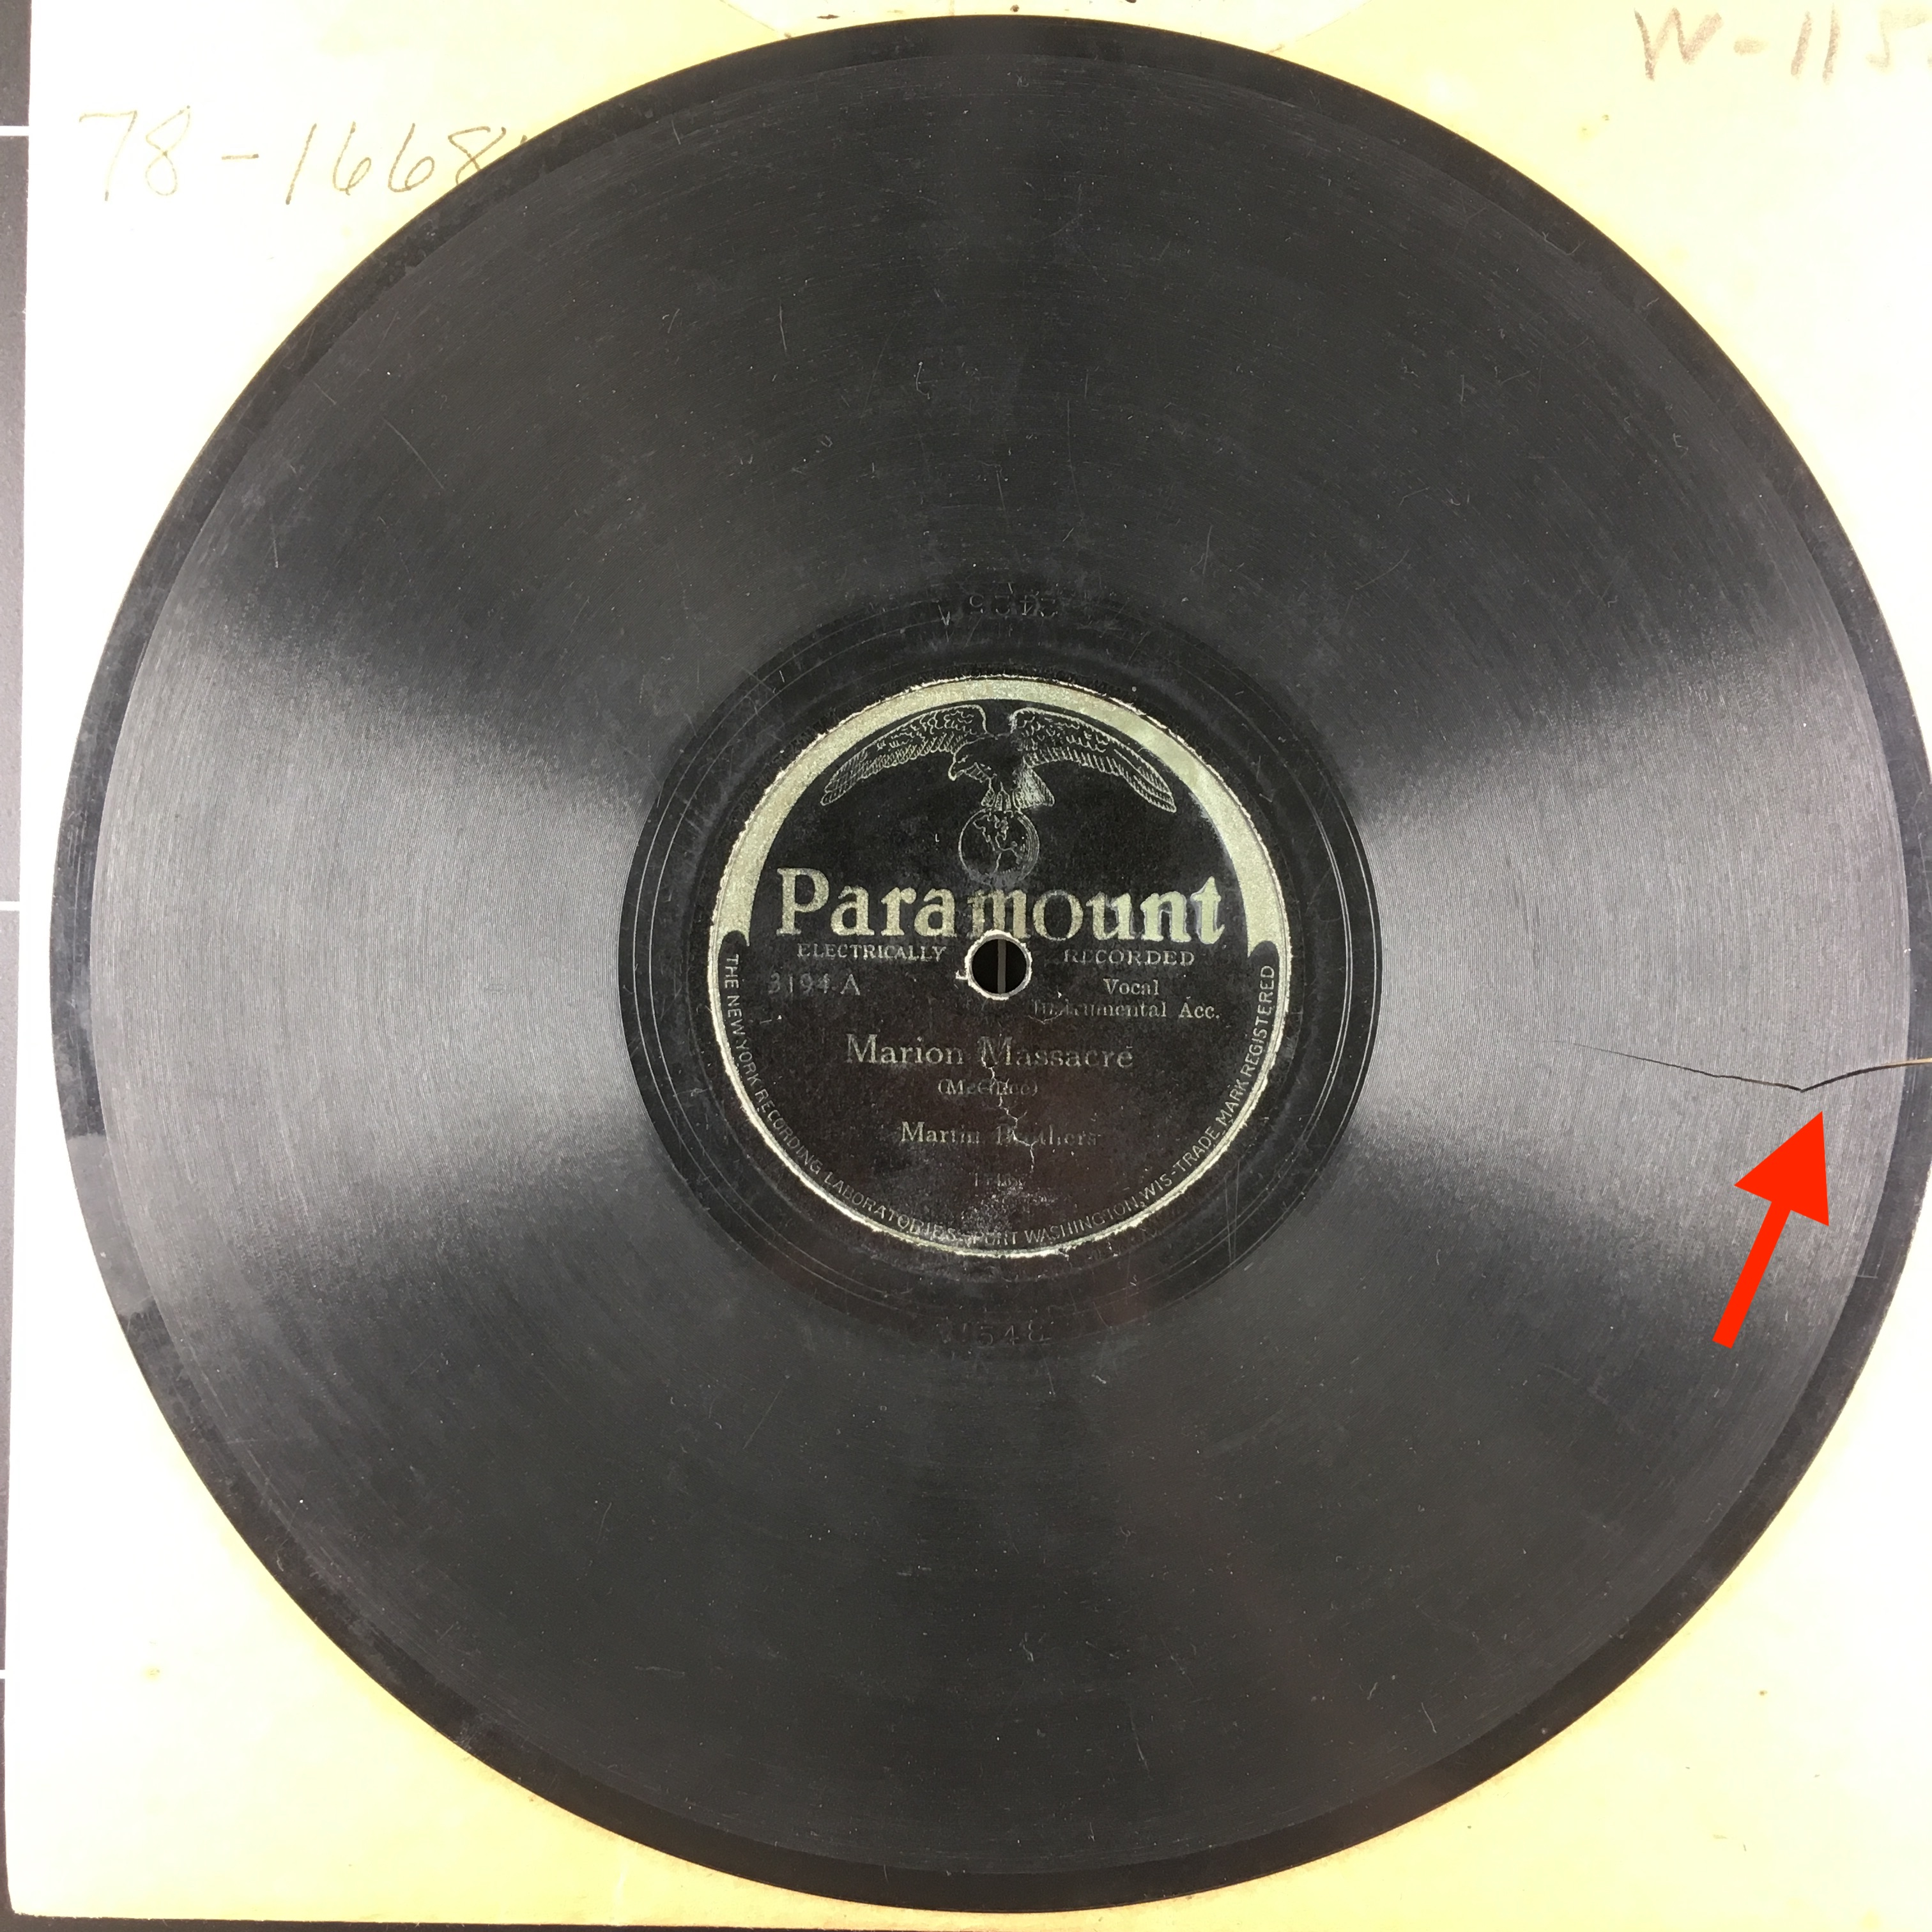 "Record label for 78RPM record. Text reads: Paramount, Electrically Recorded. 3194-A. Vocal, Instrumental Acc. Marion Massacre (McGhee). Martin Brothers. Bottom of label reads: ""The New York Recording Laboratories - Port Washington, Wis-Trade Mark Registered."""